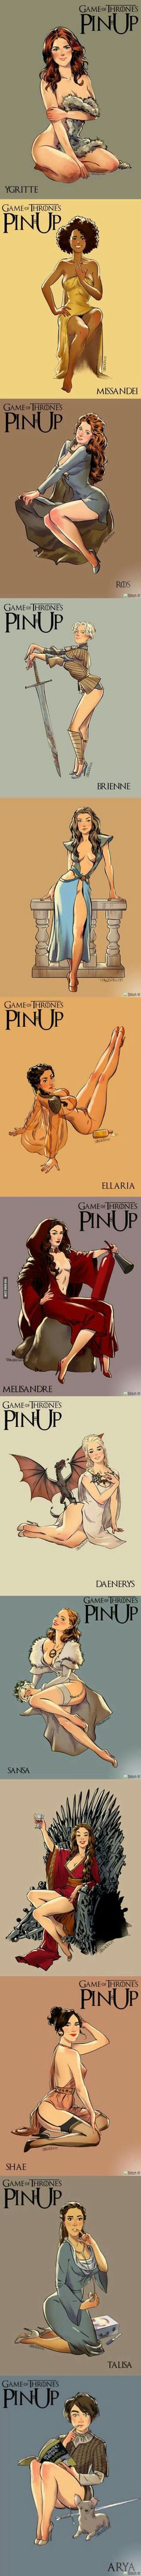 Game of Pin-up